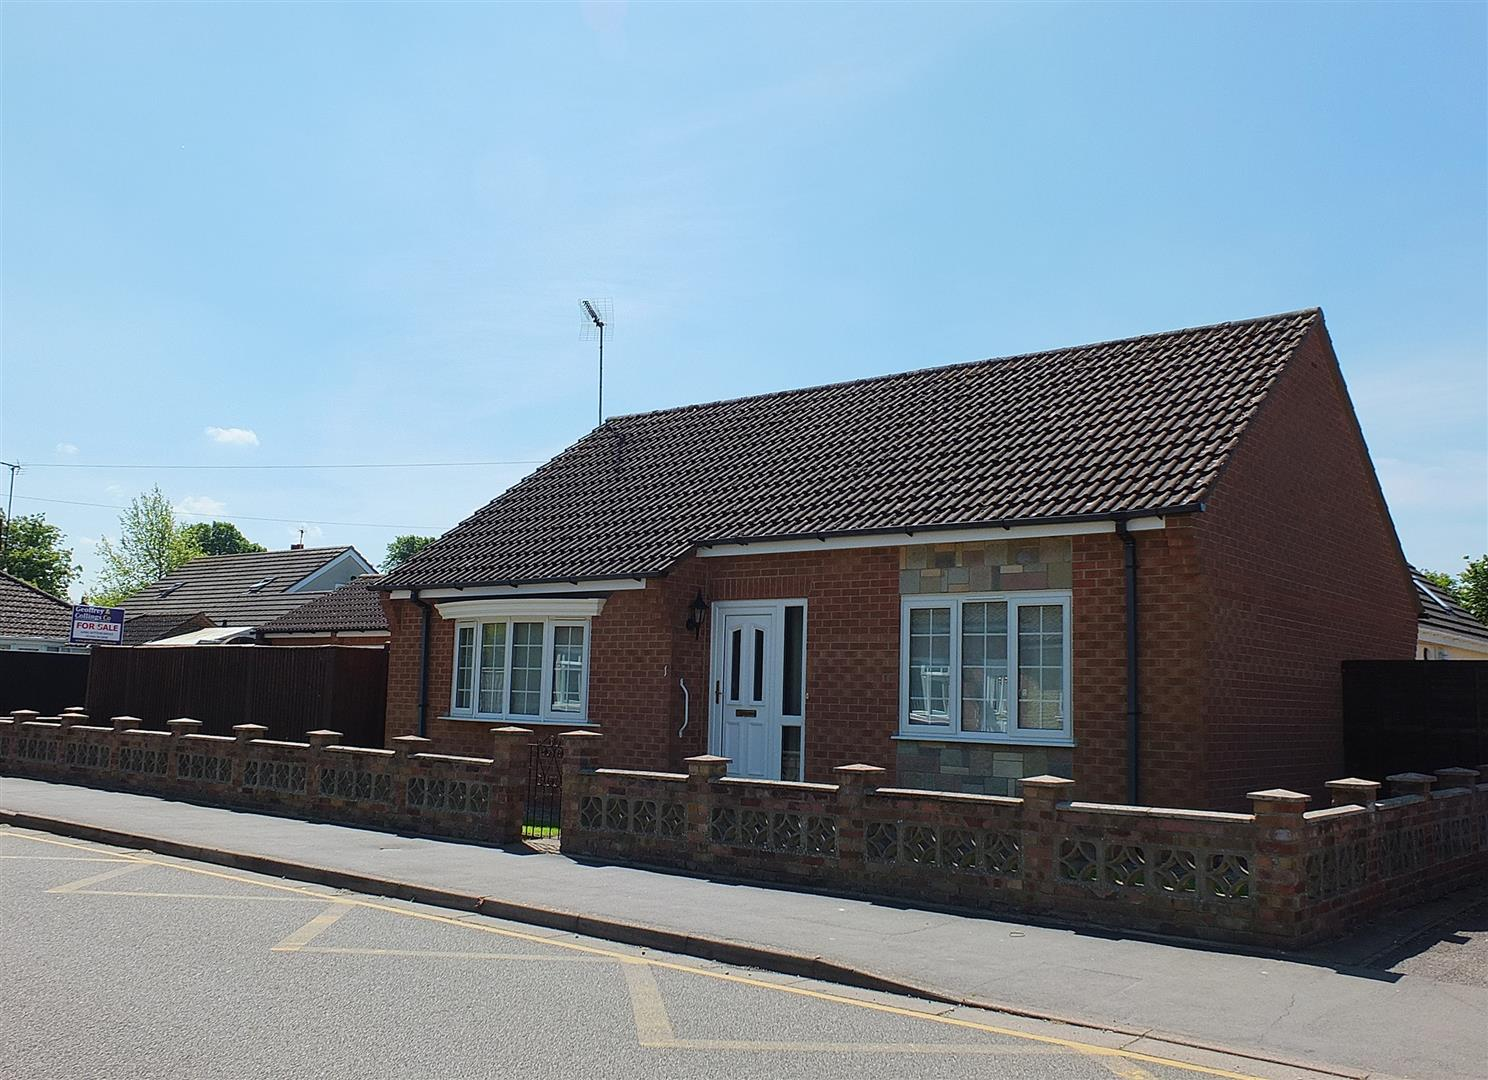 2 bed detached bungalow for sale in Long Sutton Spalding, PE12 9EP, PE12